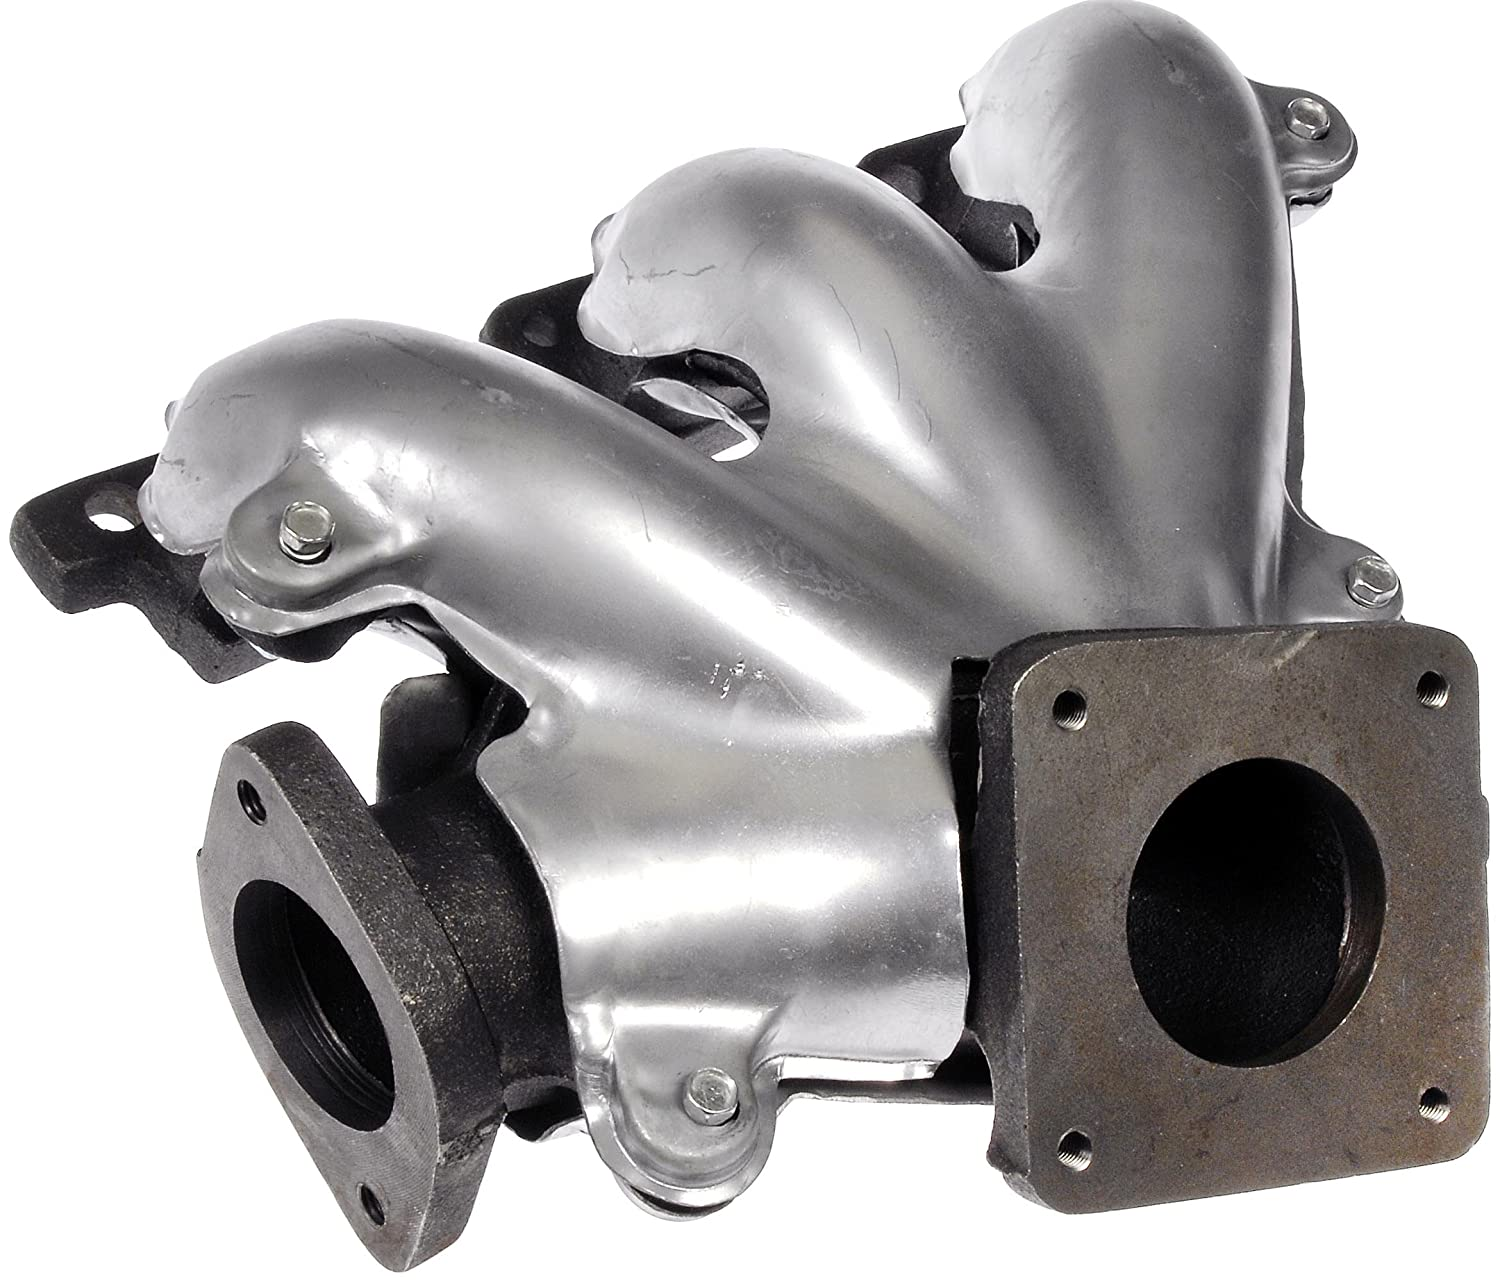 Dorman 674-983 Passenger Side Exhaust Manifold Kit For Select Chrysler//Dodge//Volkswagen Models